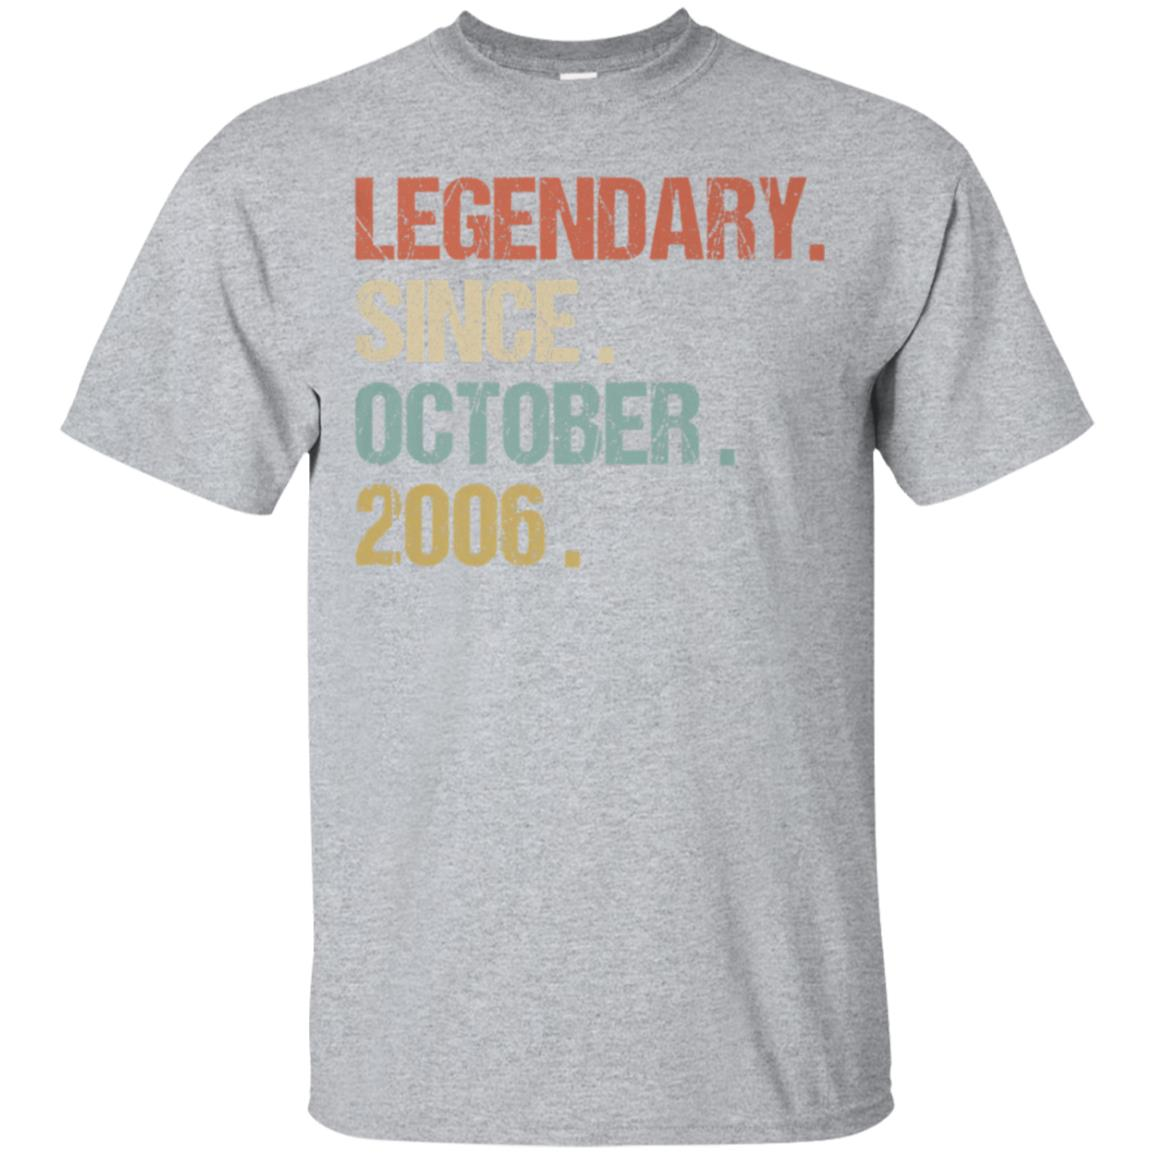 12th Birthday Gift Legendary Since October 2006 Shirt Retro 99promocode